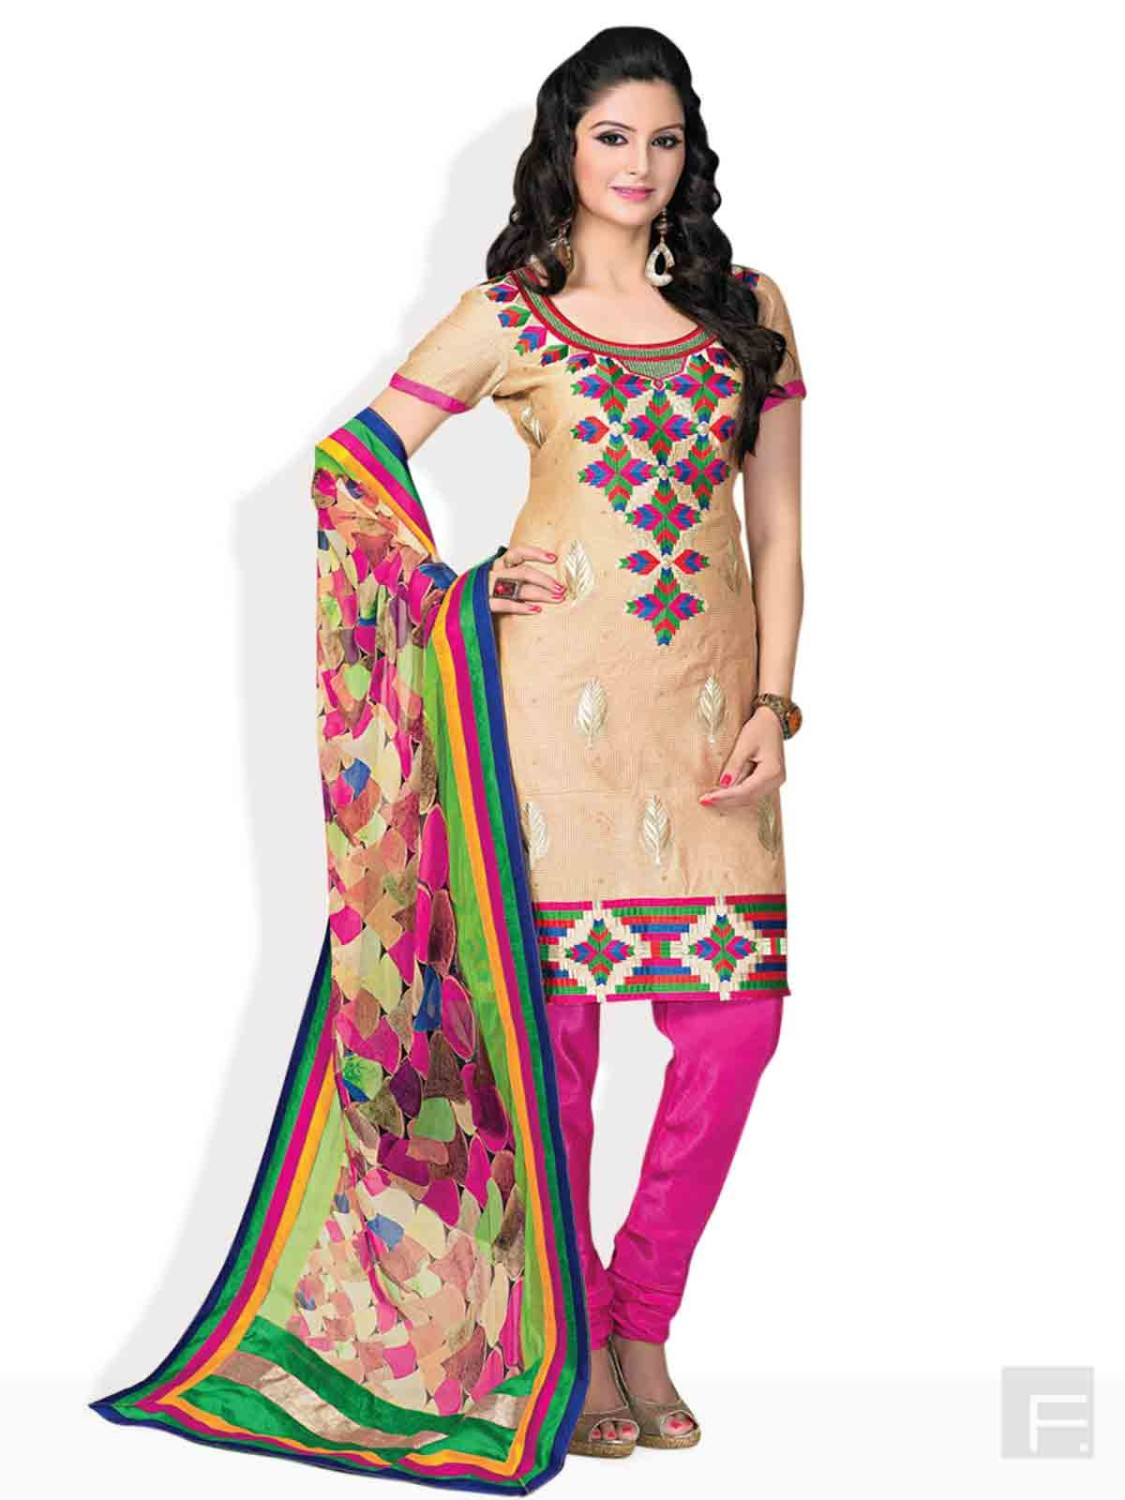 andorra map with Cotton Printed Dress Material Mumbai India 1586061 on Homelidays Pyrenees moreover Cotton Printed Dress Material Mumbai India 1586061 moreover Singapore furthermore Watch further Empire Hotel And Country Club Brunei Darussalam.